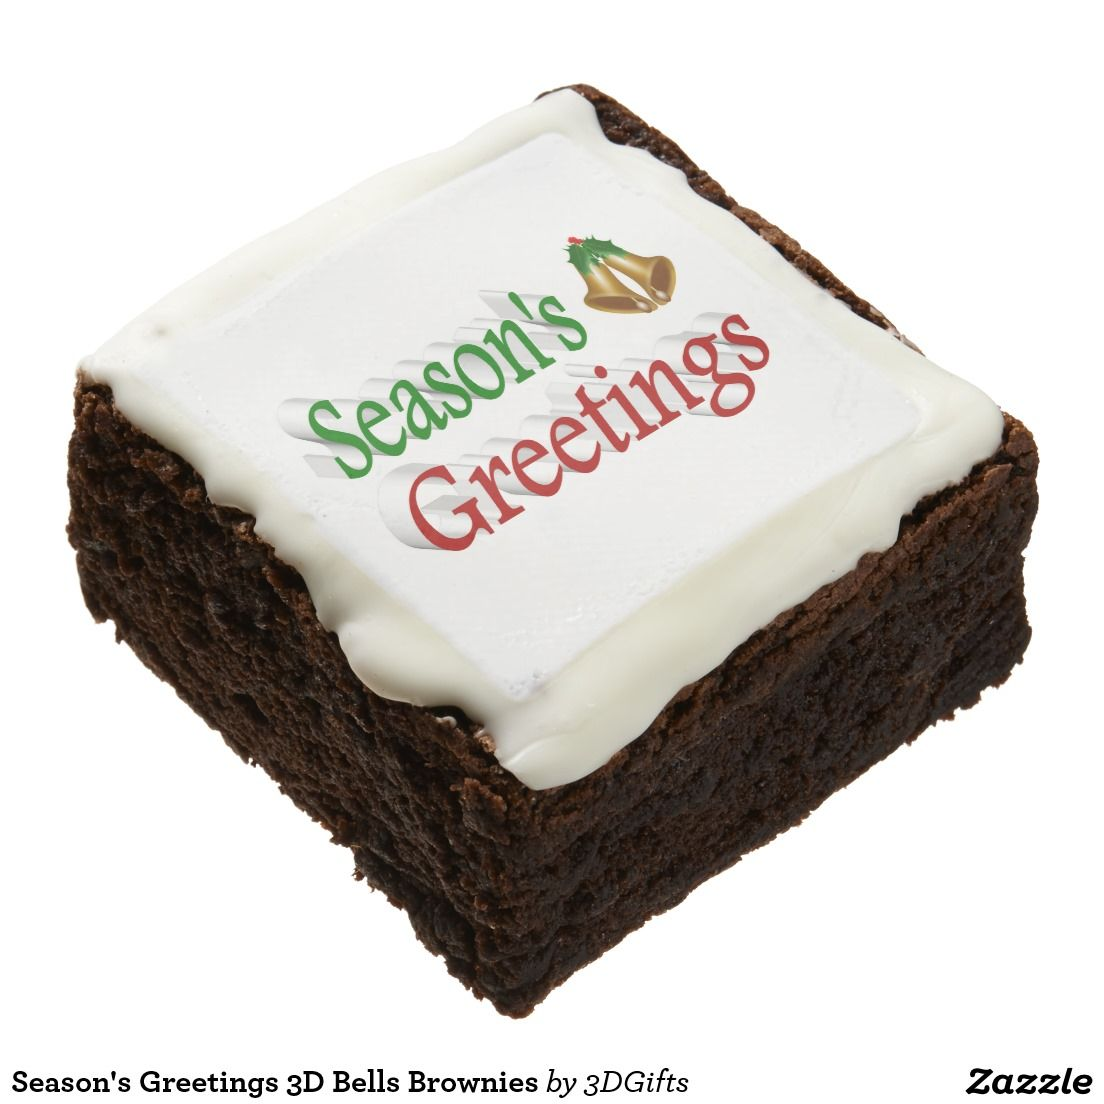 Season's Greetings 3D Bells Brownies